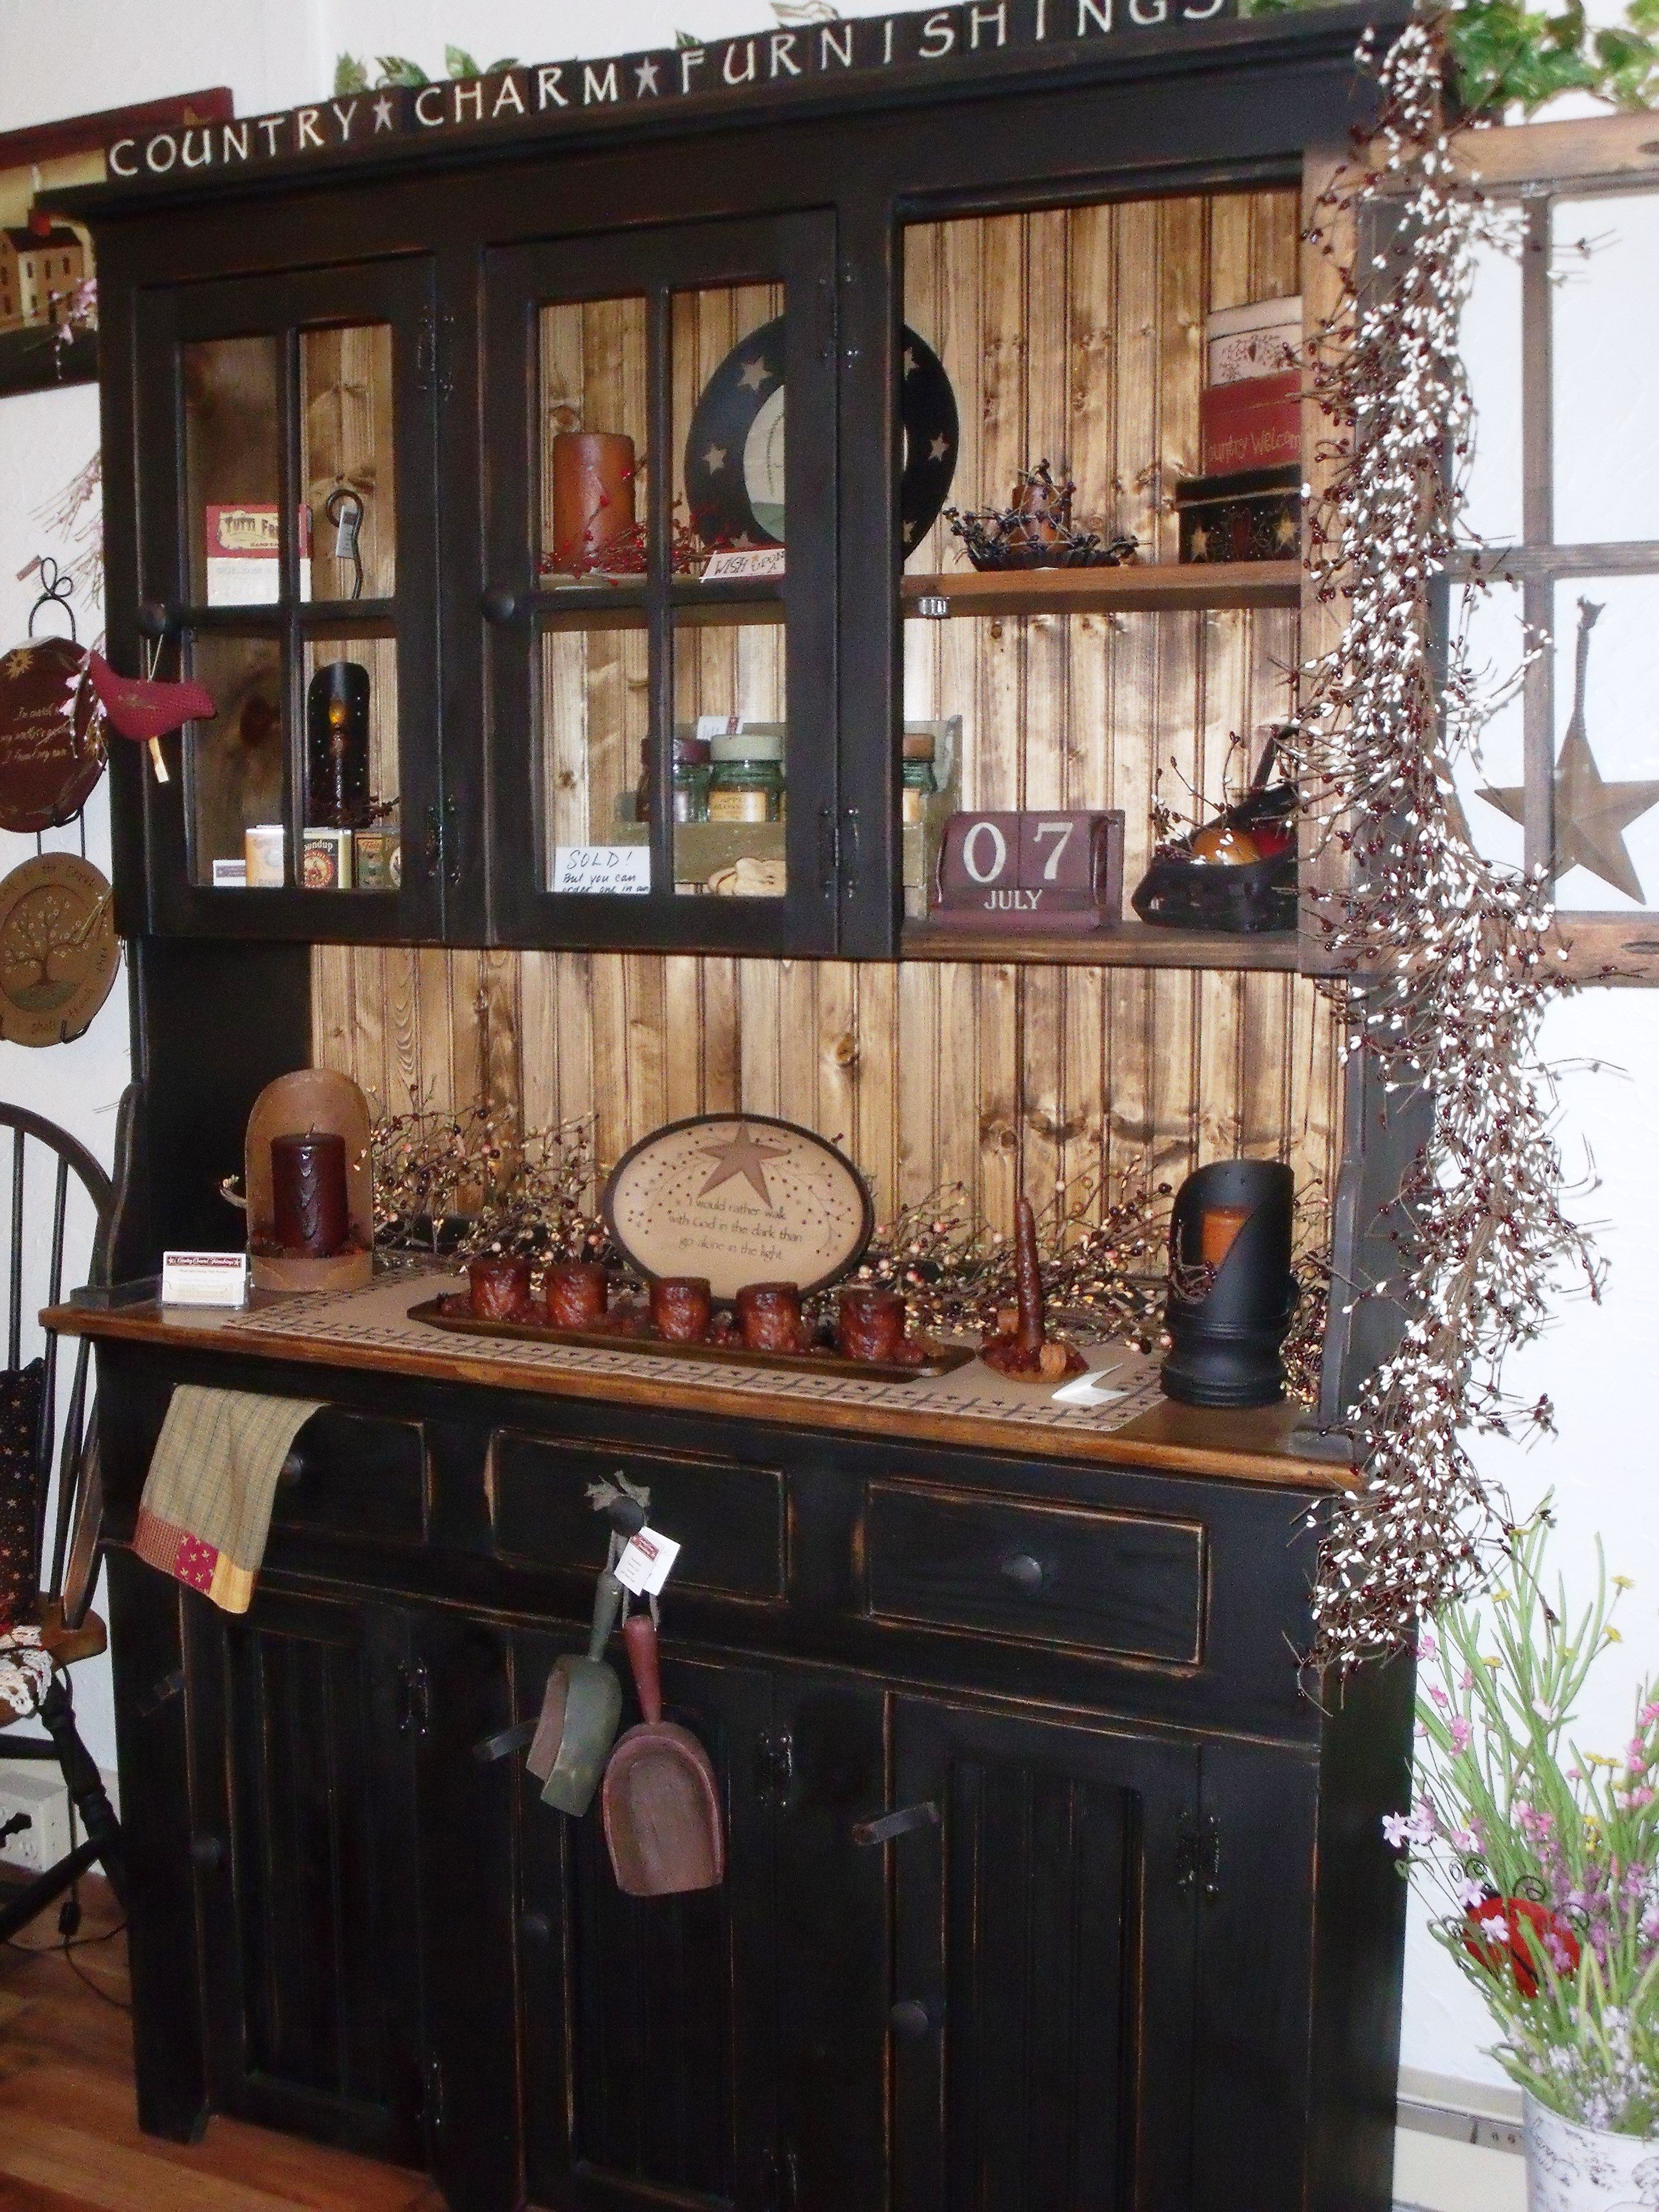 Country Charm Furnishings In Phoenixville Pa Country Charm